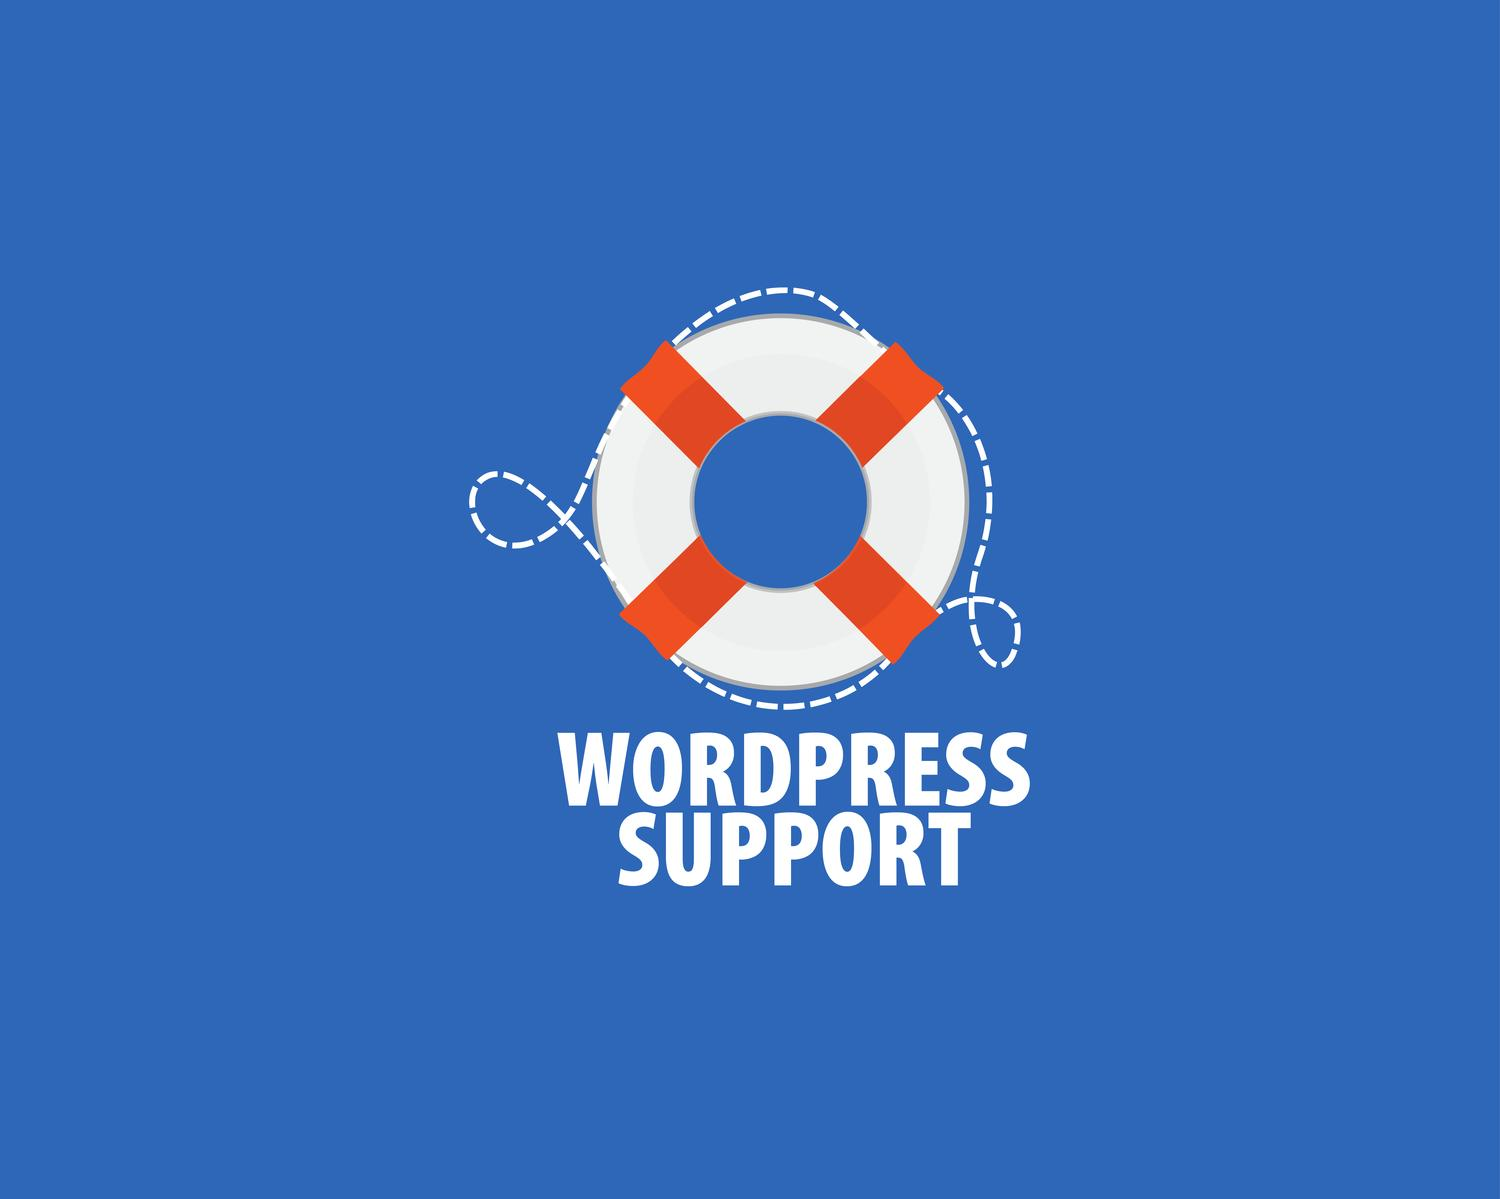 Full Wordpress Maintenance -Backups, Core and Plugin updates, 24/7 monitoring and support. by eDesignsCompany - 106001